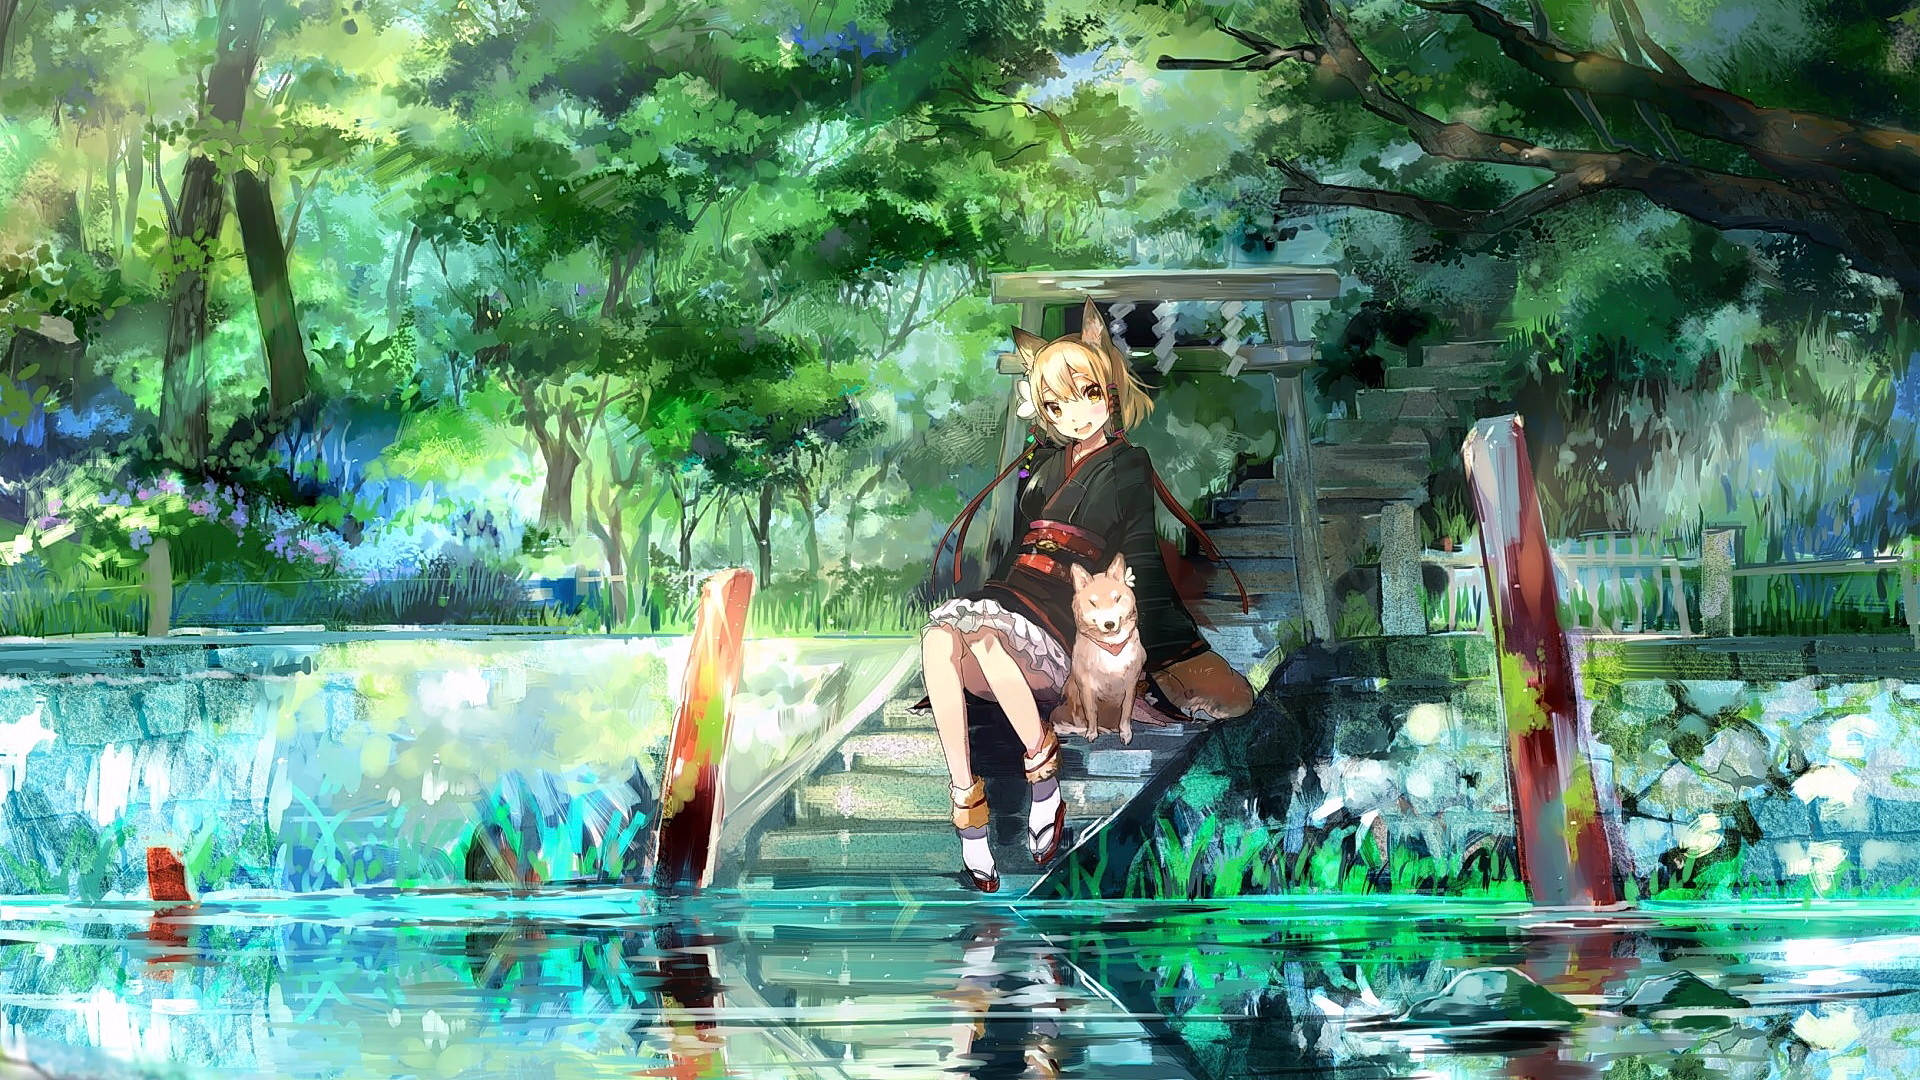 Anime – ExciteWallpapers.com